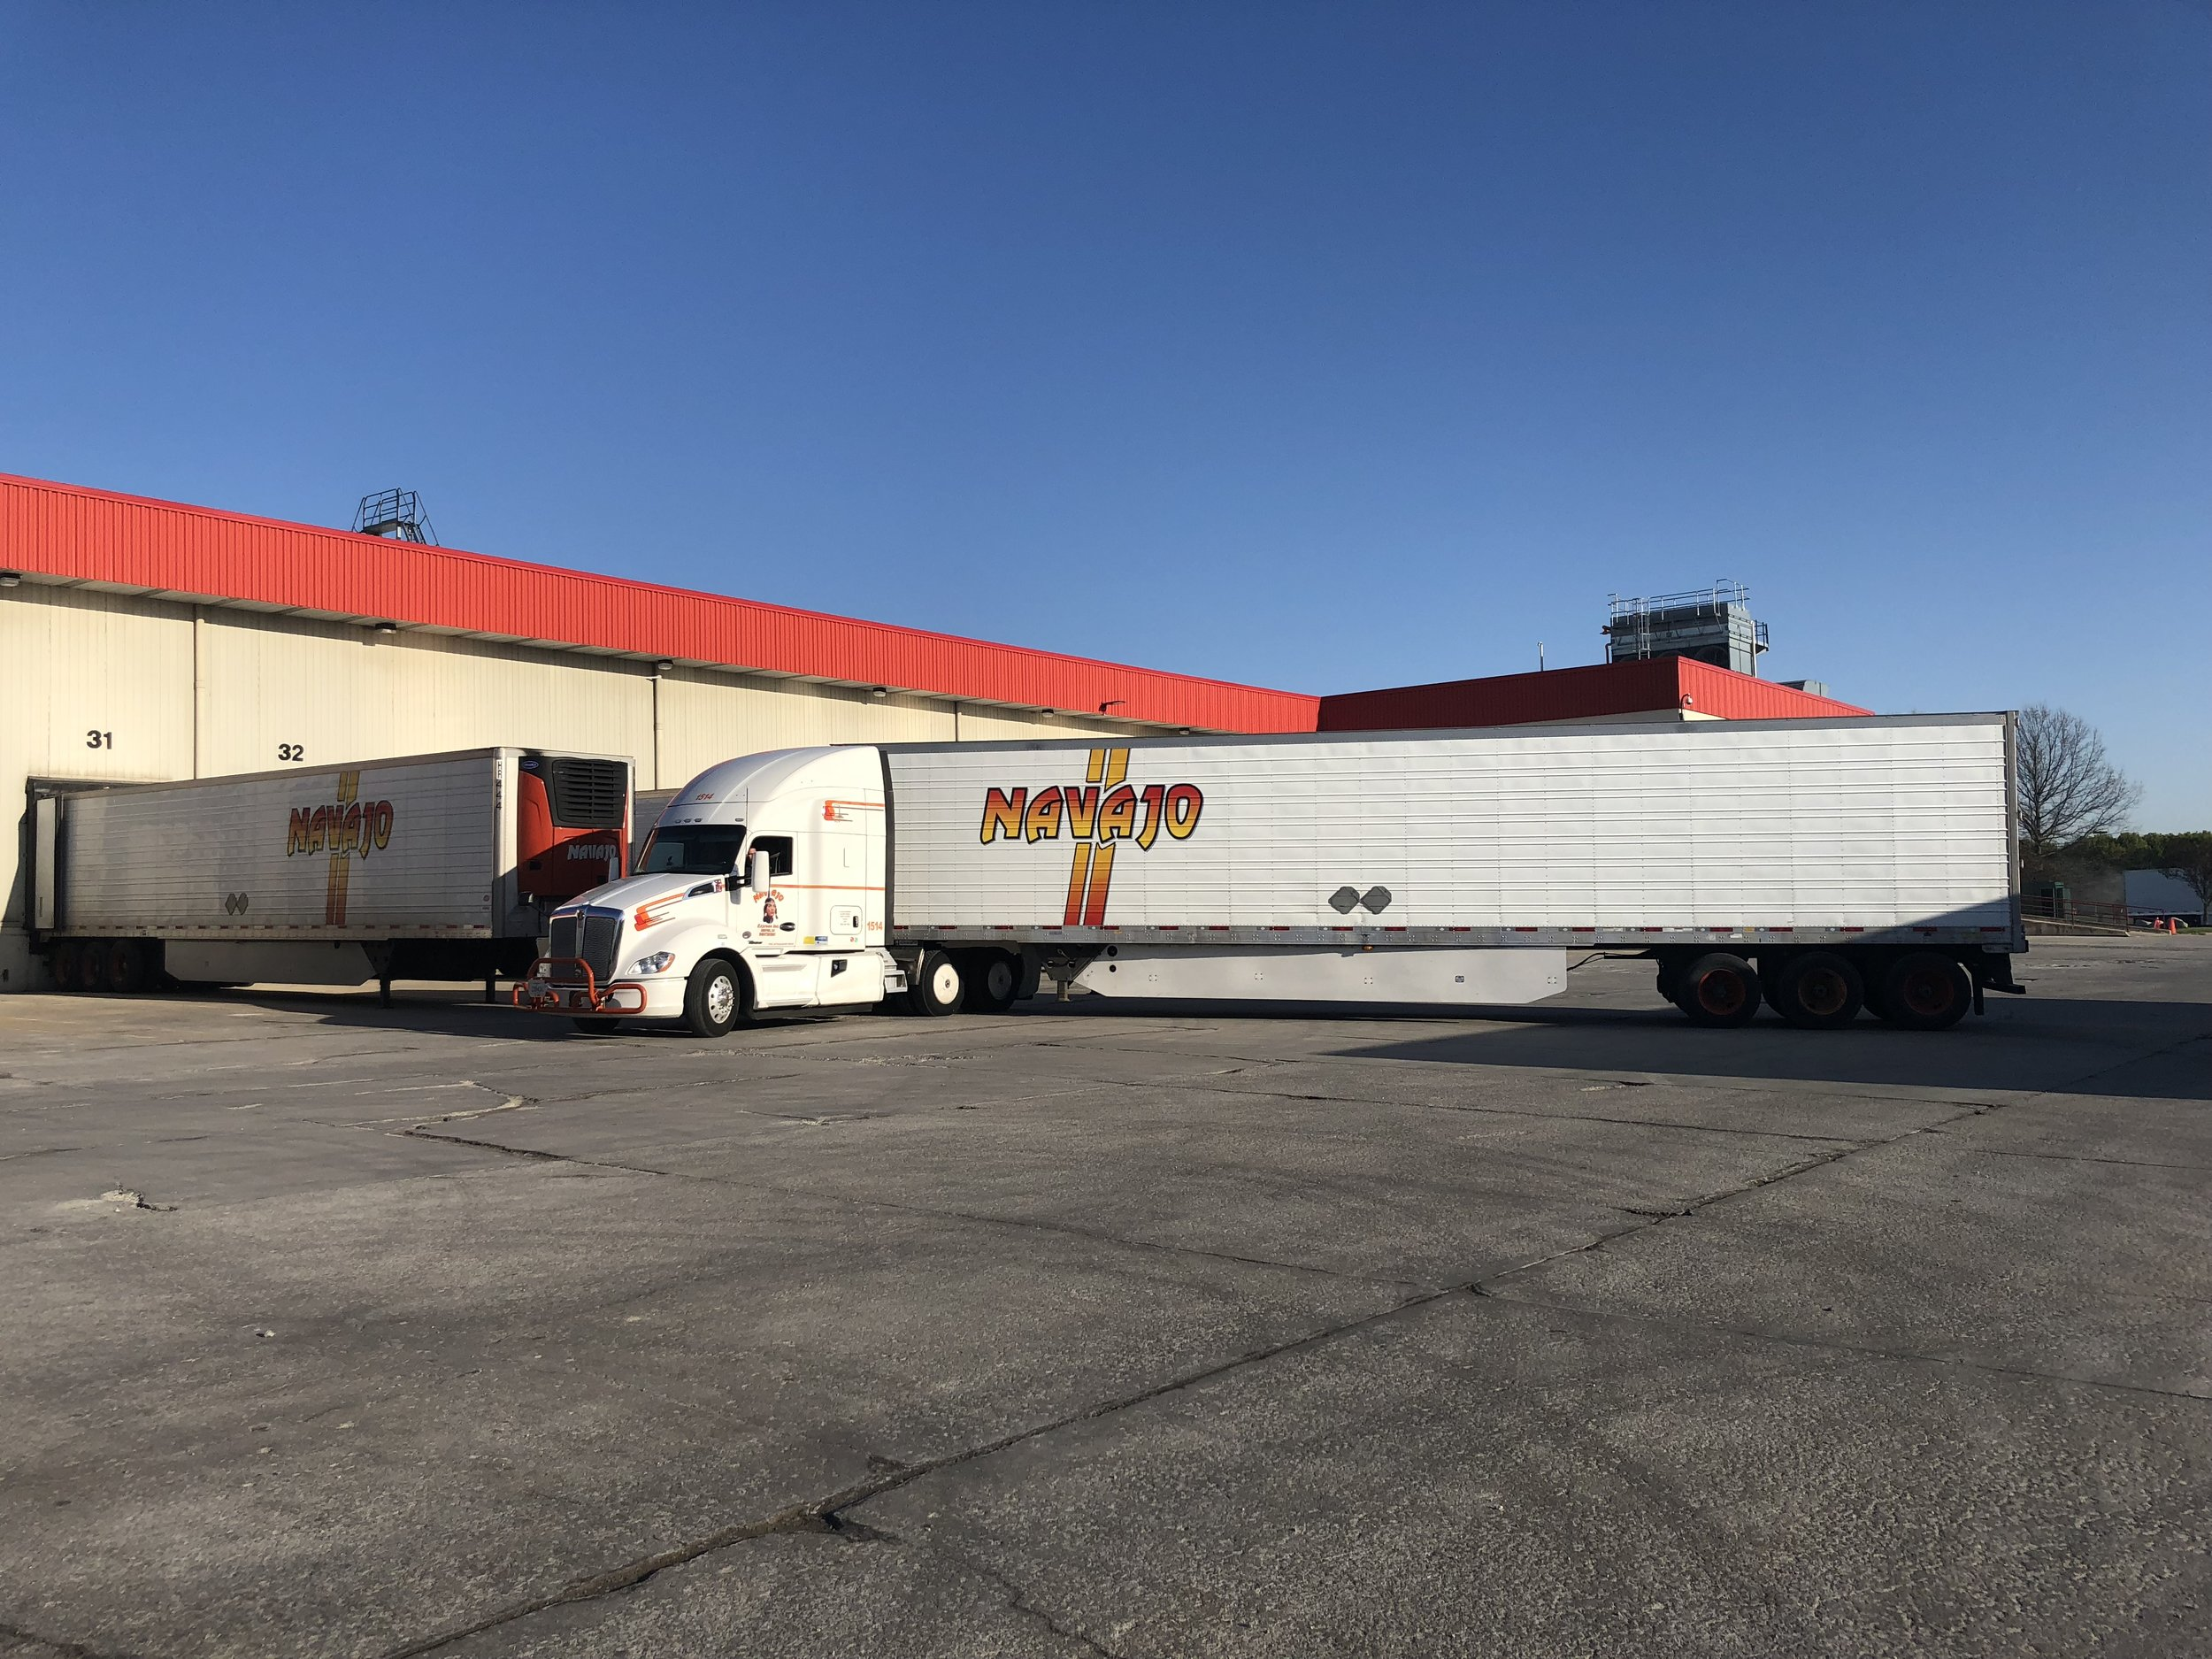 Many of our Navajo drivers in Indiana are familiar with the ConAgra regional route and earning great miles!